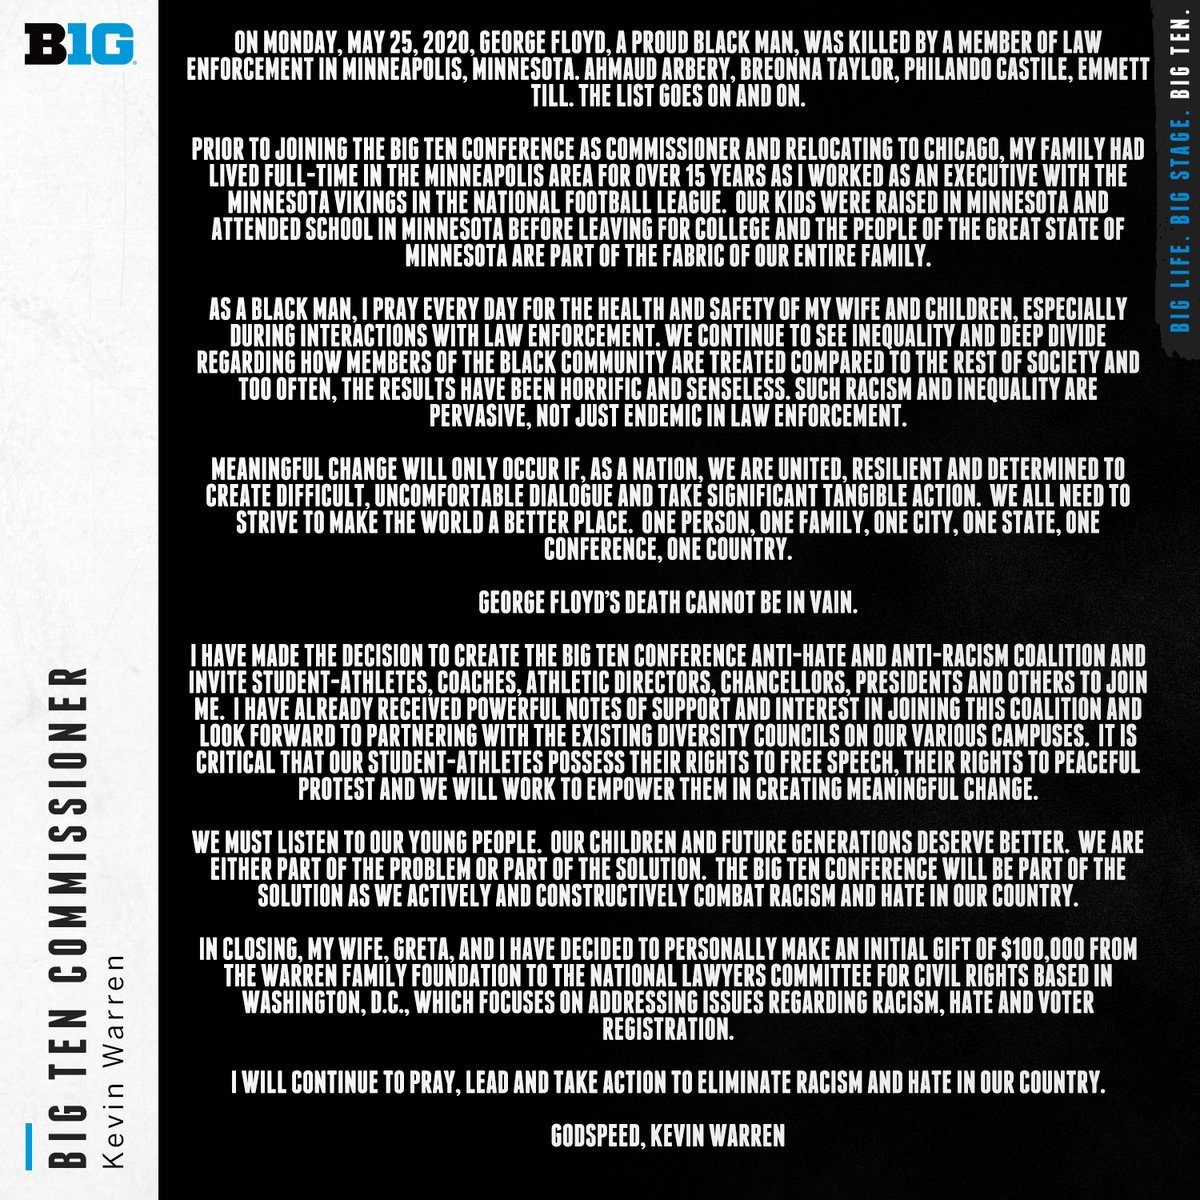 An open letter from Big Ten Commissioner Kevin Warren